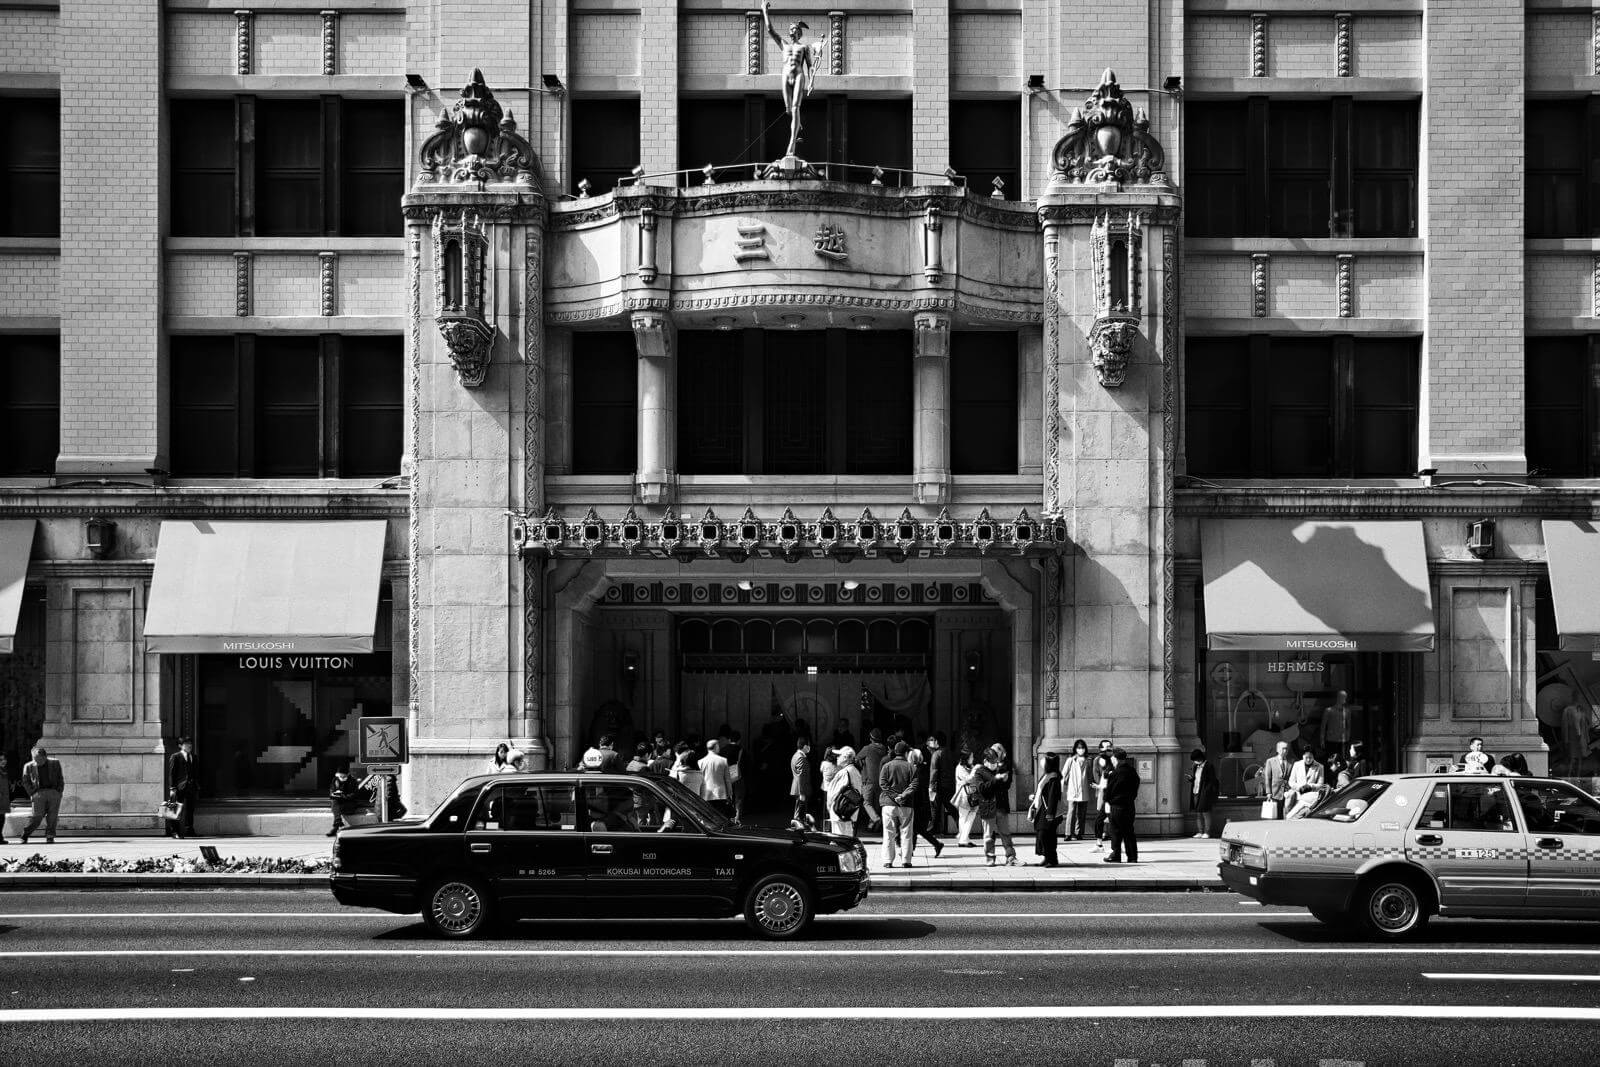 Mitsukoshi department store, Tokyo - Photo by Zdenek Sindelar of CuriousZed Photography